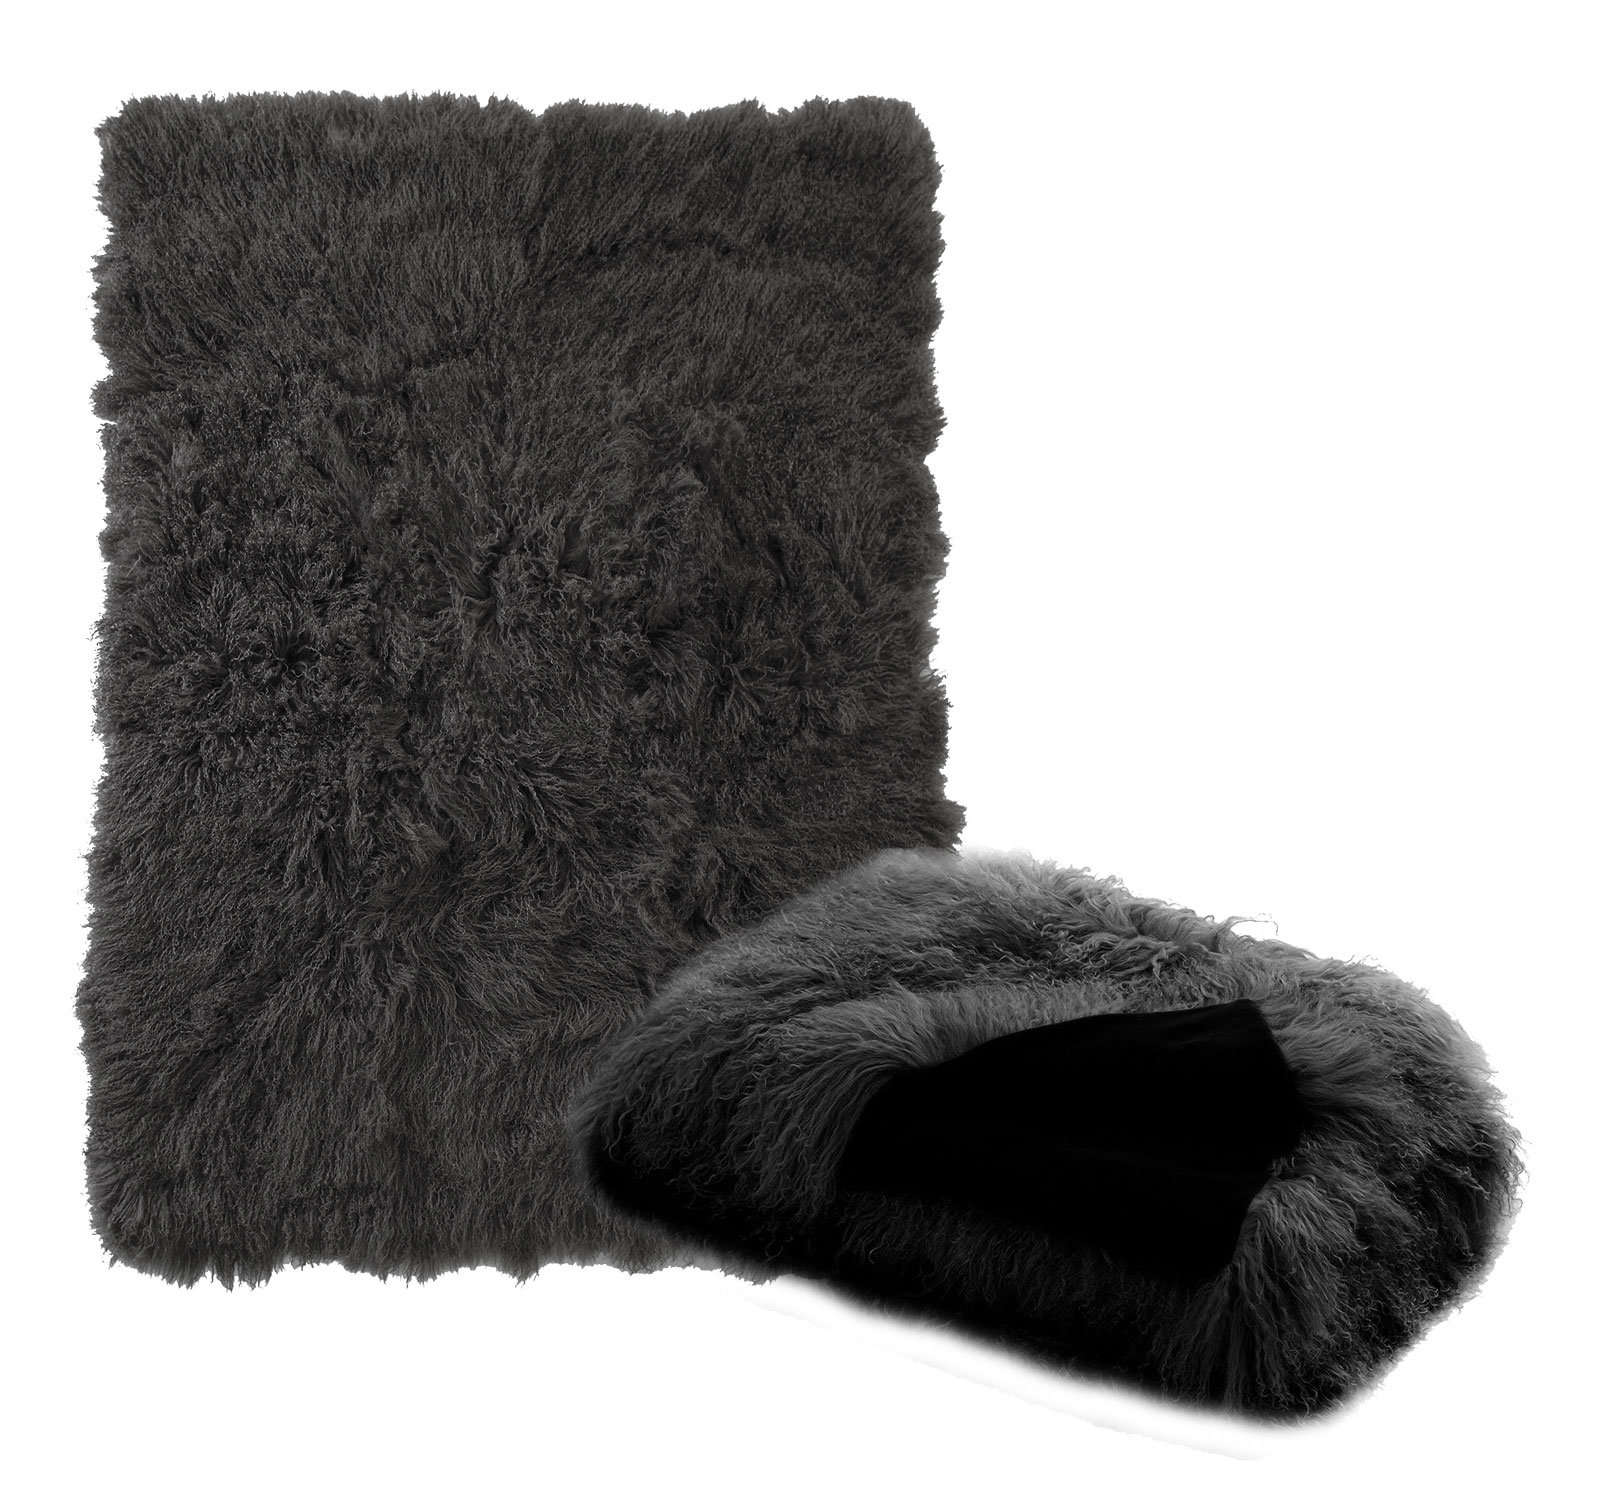 Tibetan Lambskin Throw Charcoal Gray